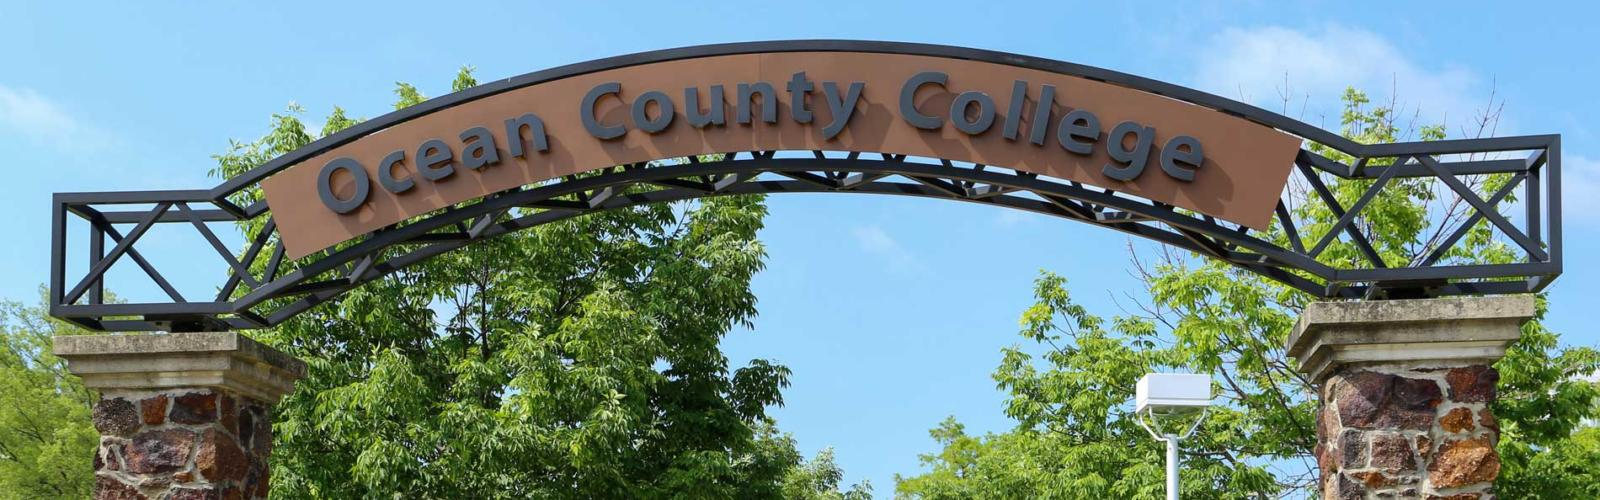 Ocean County College archway sign